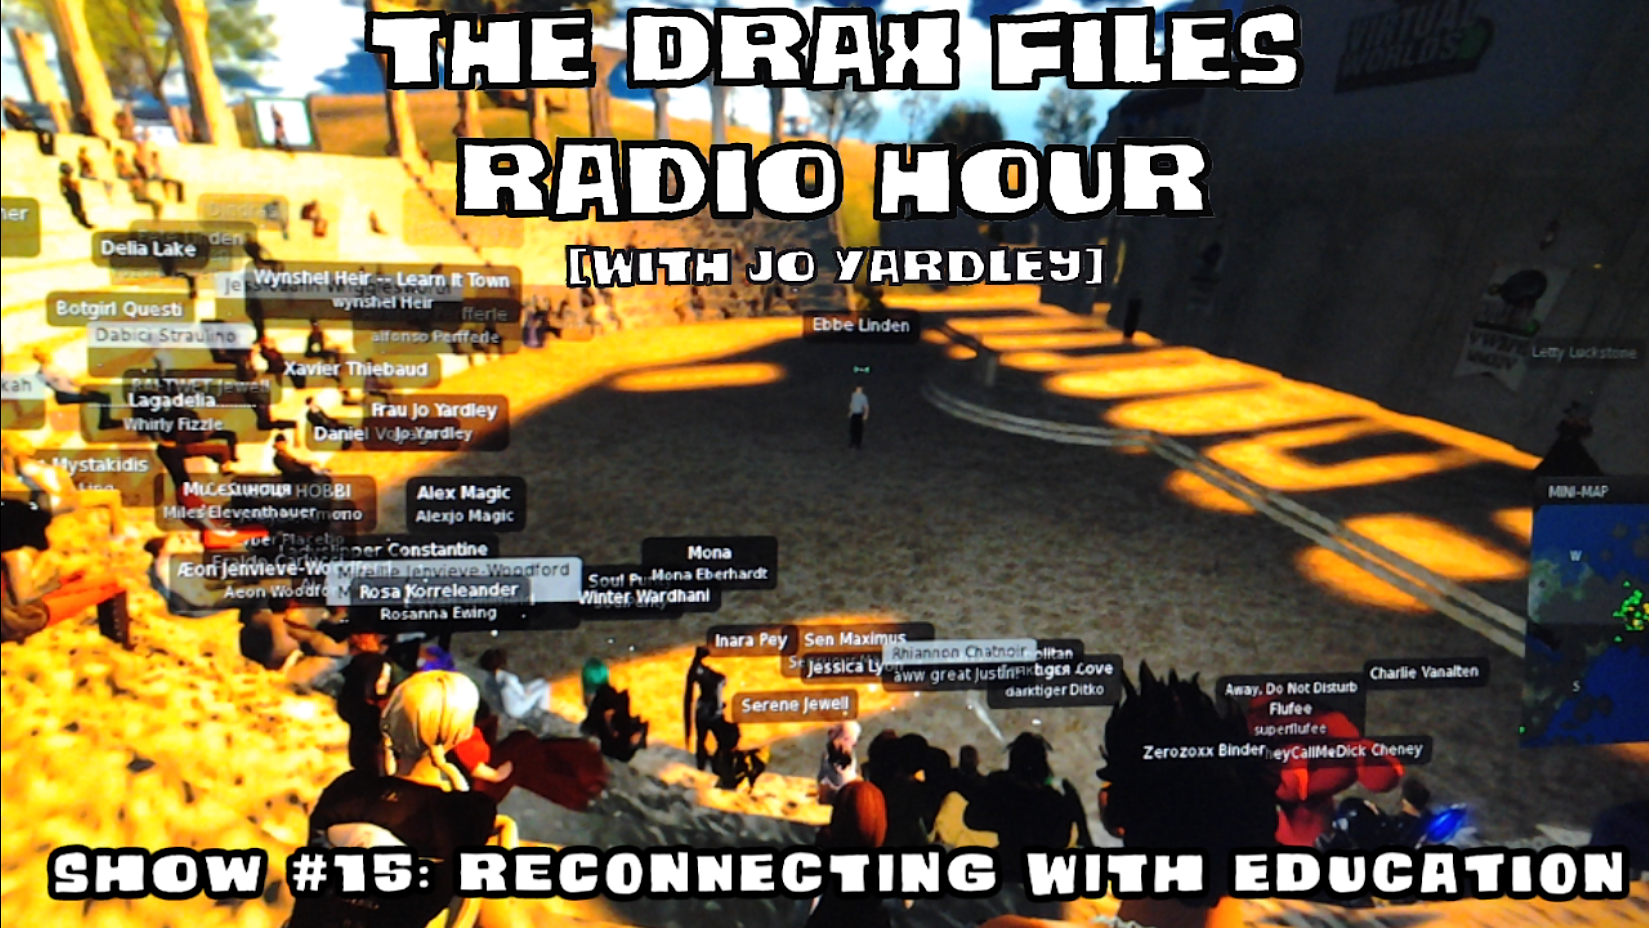 The Drax Files Radio Hour, Show #15. Image courtesy of Draxtor Despres.